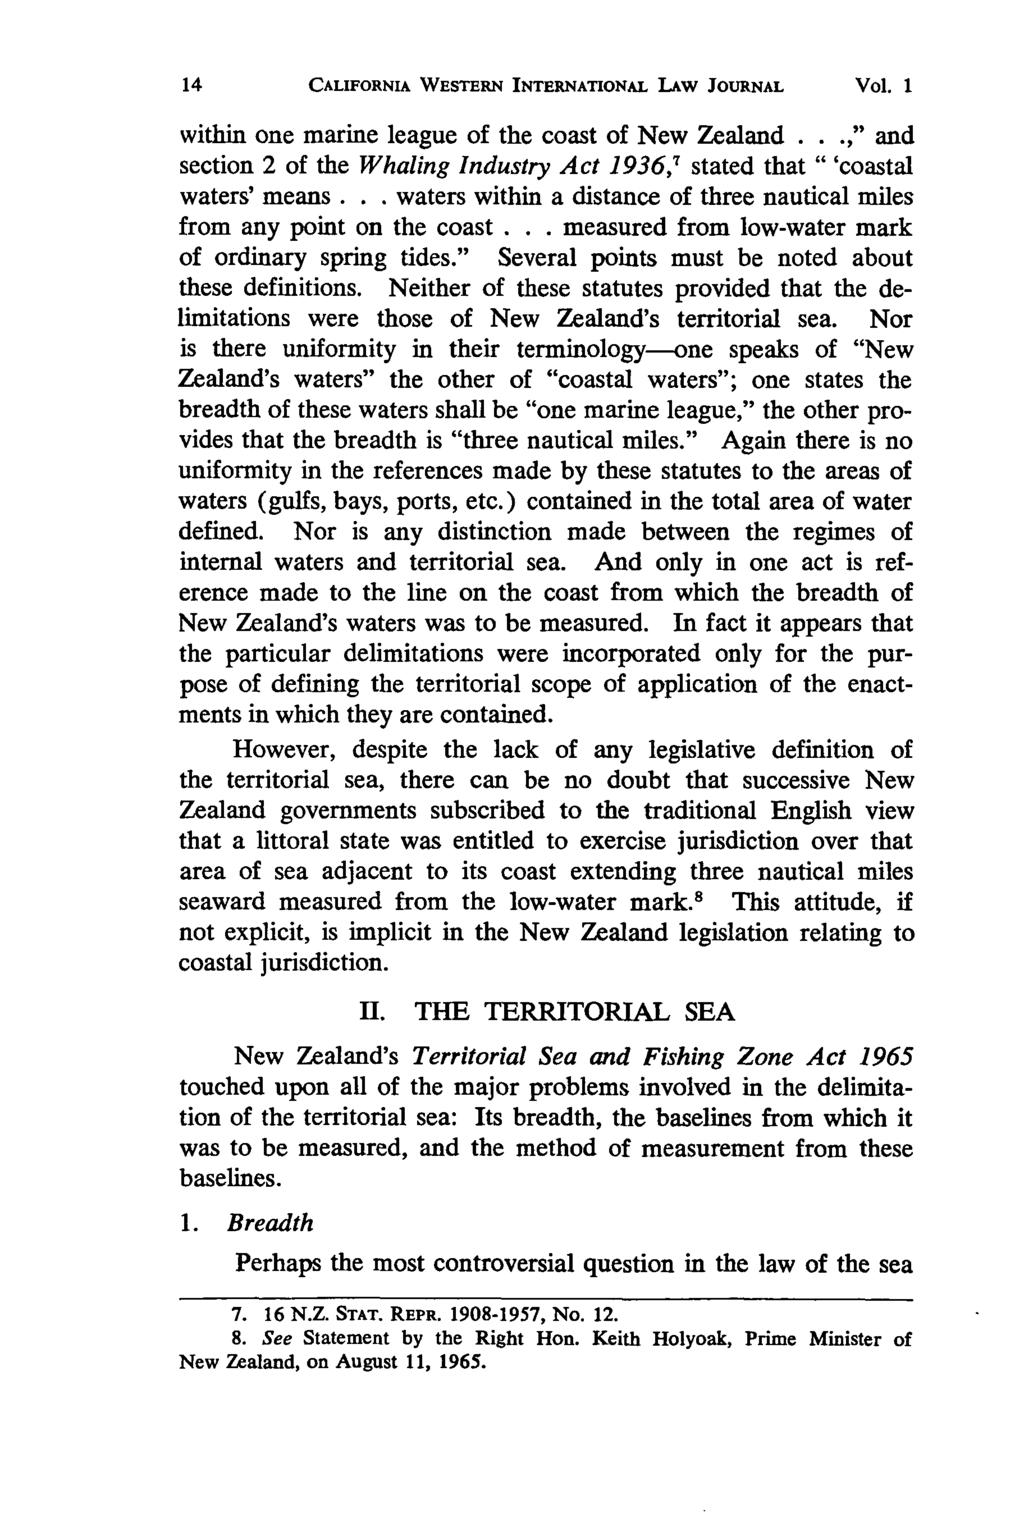 California Western International Law Journal, Vol. 1 [1970], No. 1, Art. 3 CALIFORNIA WESTERN INTERNATIONAL LAW JOURNAL Vol. I within one marine league of the coast of New Zealand.